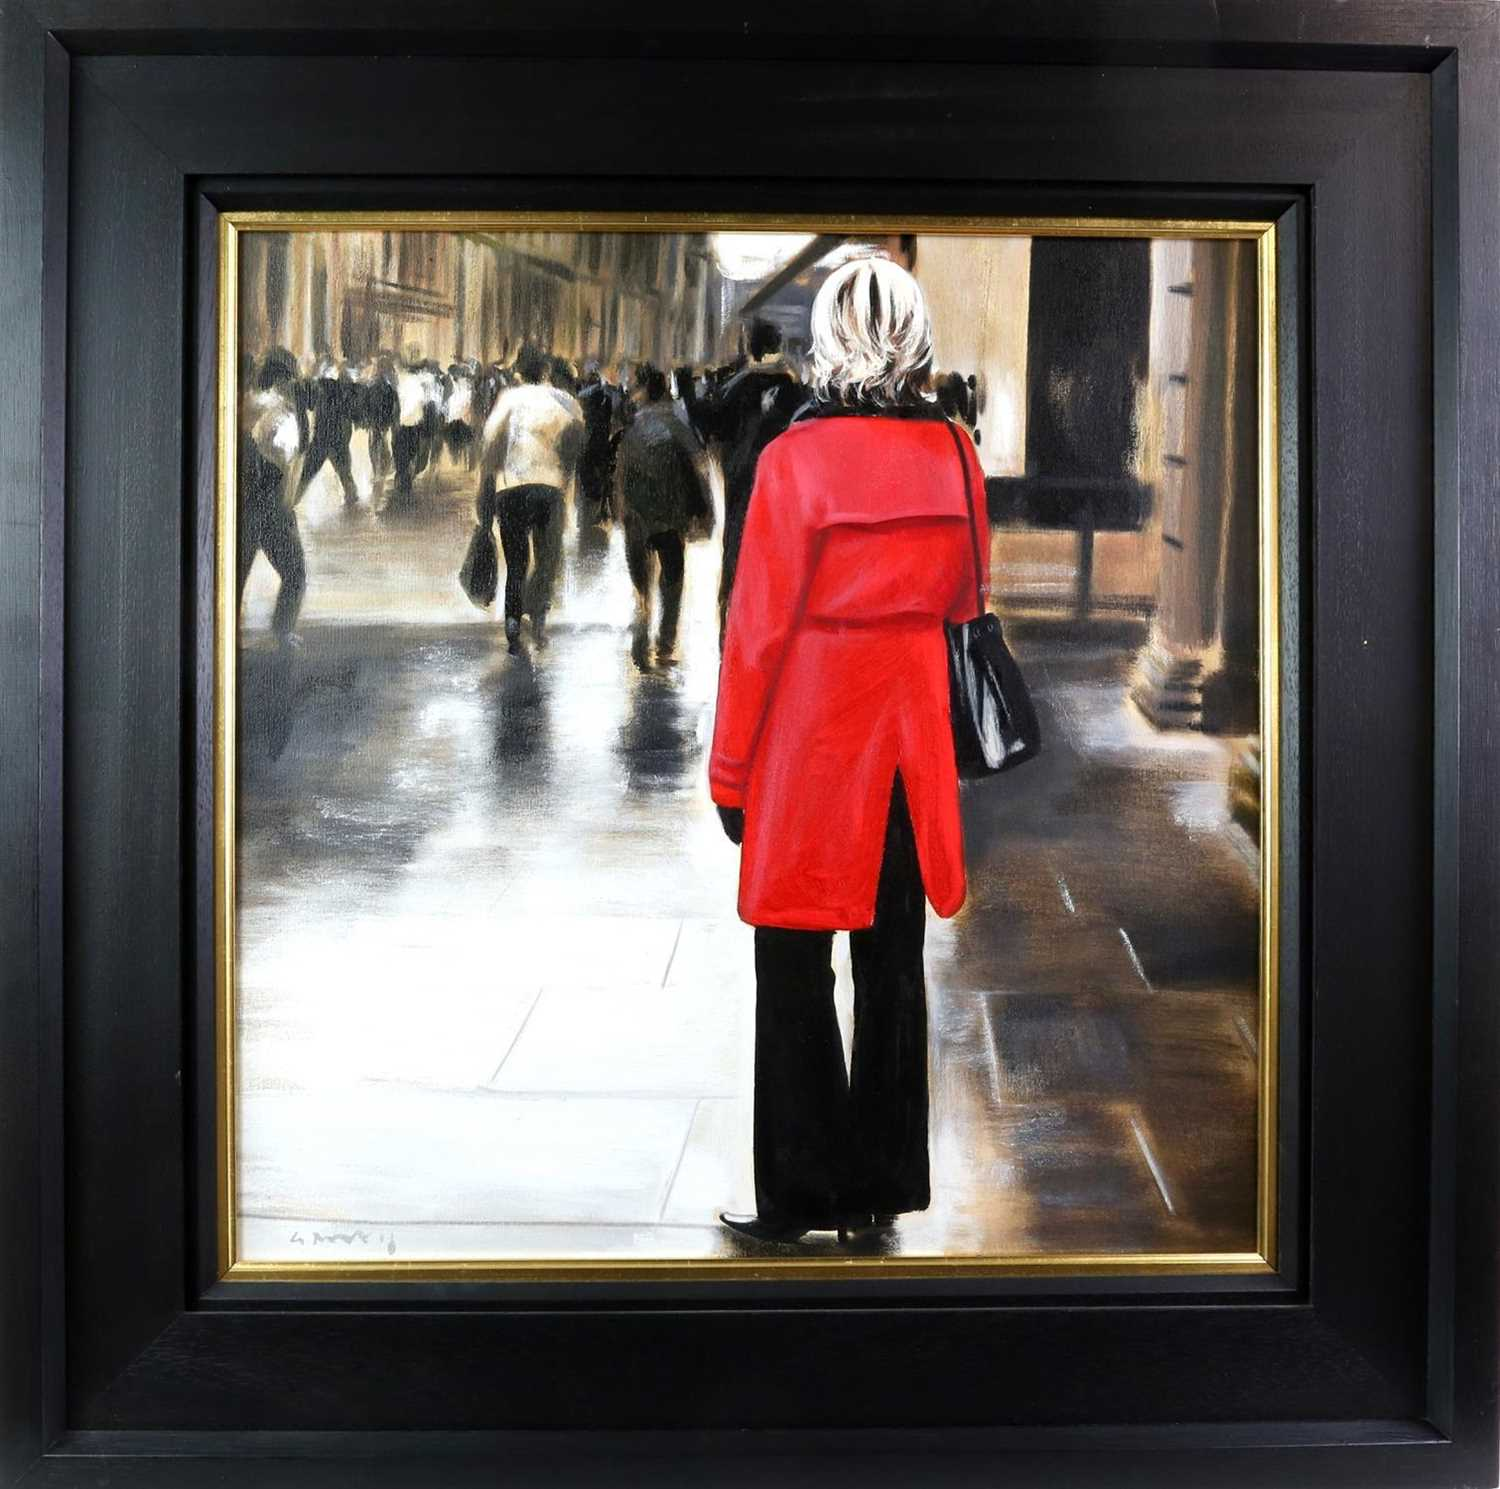 Lot 502 - RED COAT IN THE CITY (GLASGOW), AN OIL BY GERARD BURNS